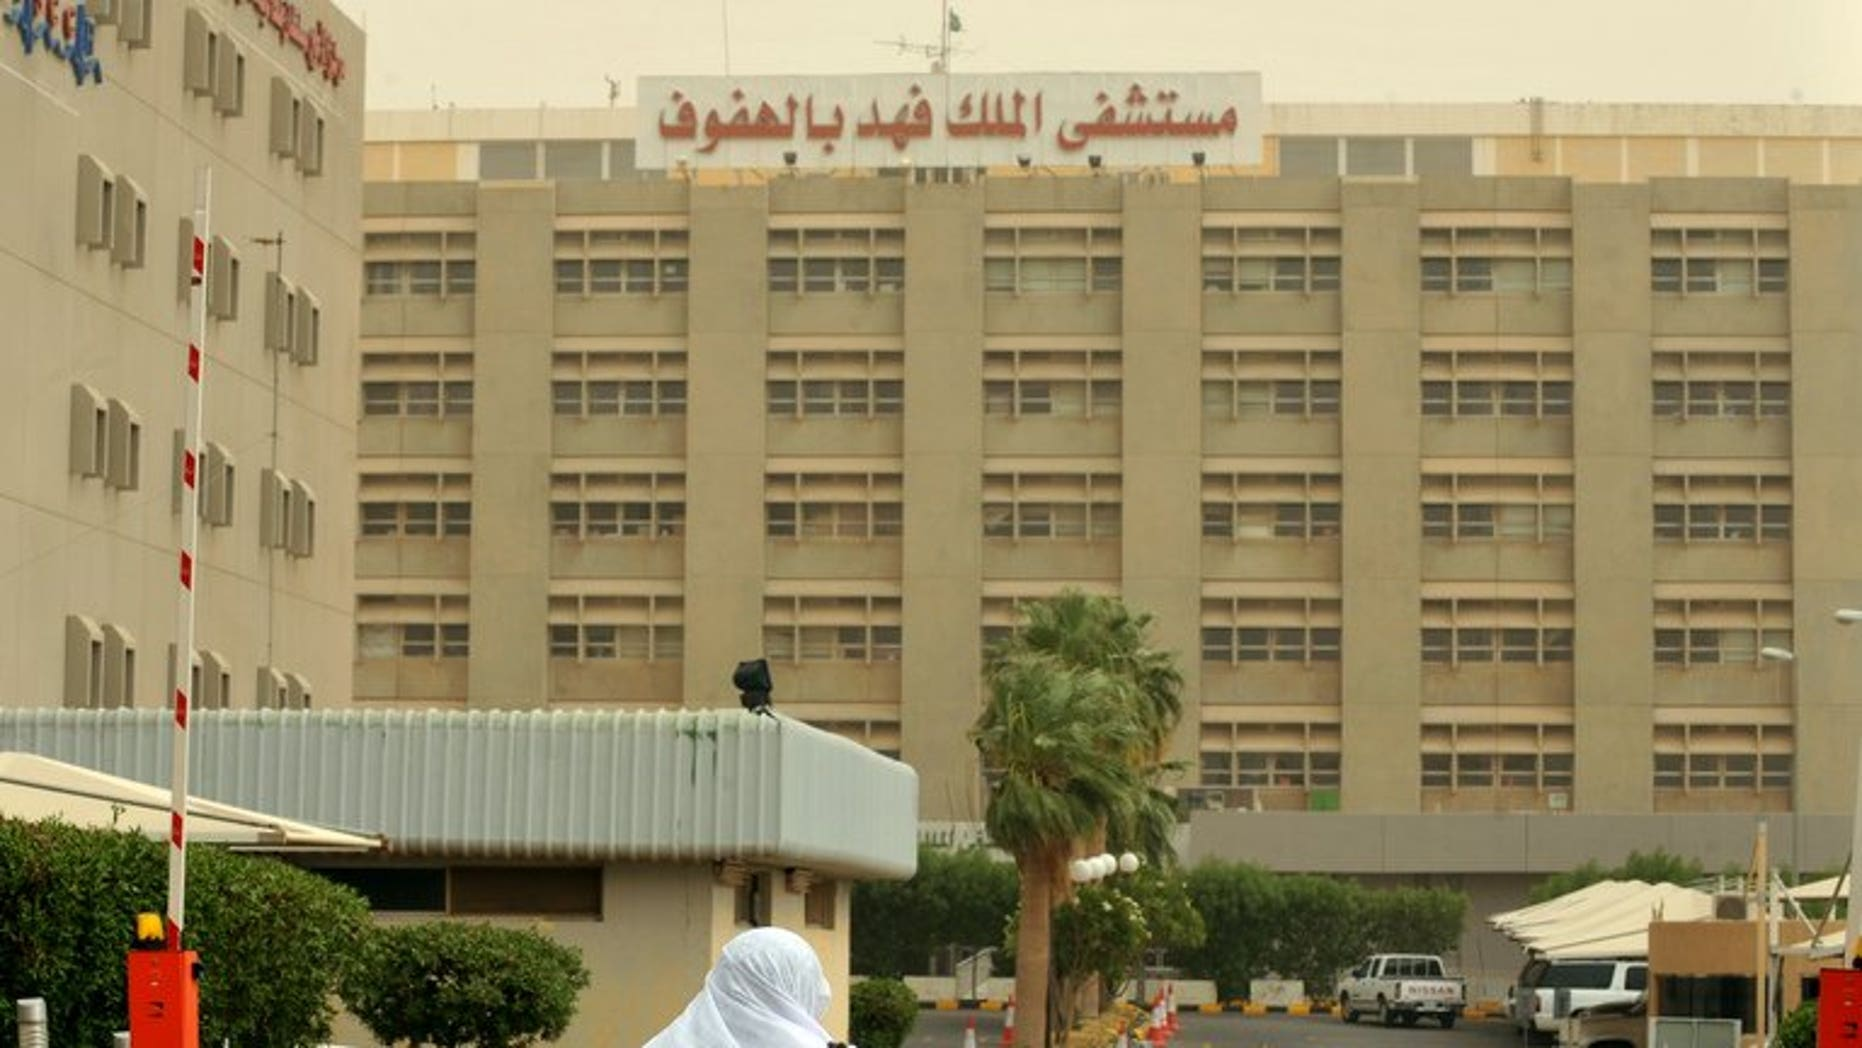 A Saudi nurse walks towards the King Fahad hospital in the city of Hofuf on June 16. Two Saudis have died after contracting the MERS coronavirus, the health ministry said on Thursday, bringing the total number of fatalities from the SARS-like virus in the kingdom to 49.